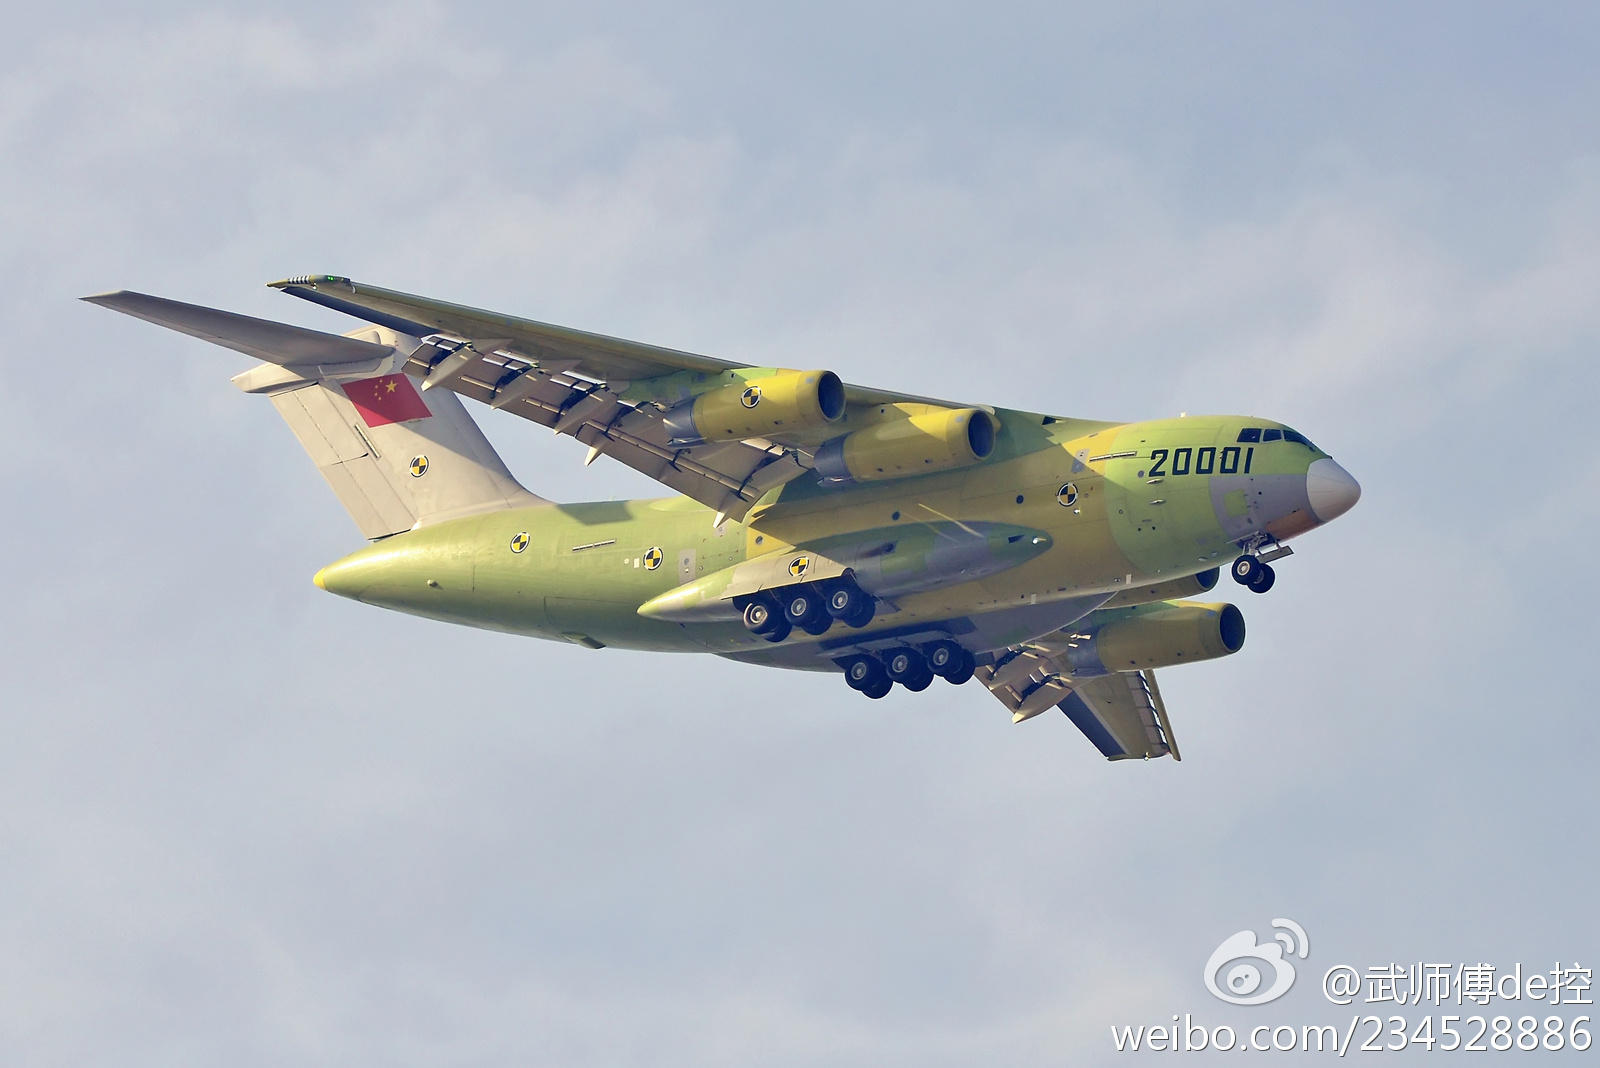 New Military Aircraft Designs New chinese large military